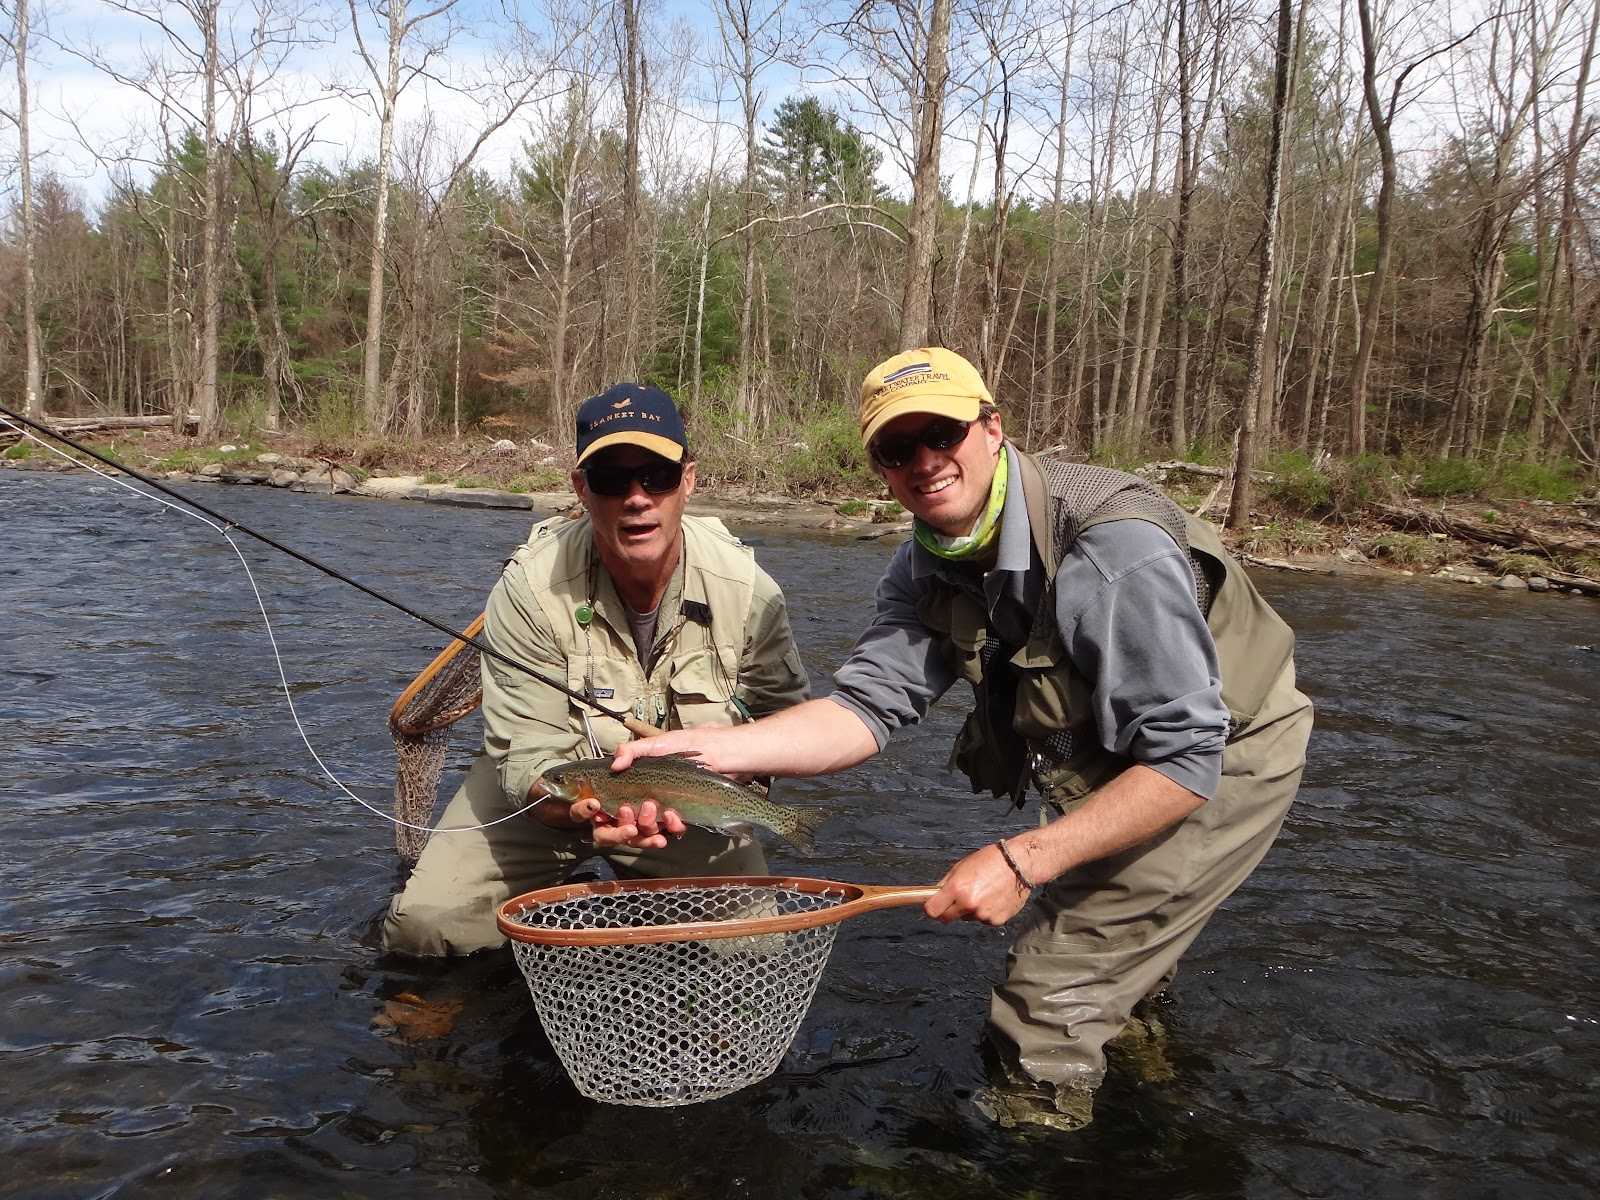 One hook up fly fishing farmington river on a saturday for Farmington river fishing